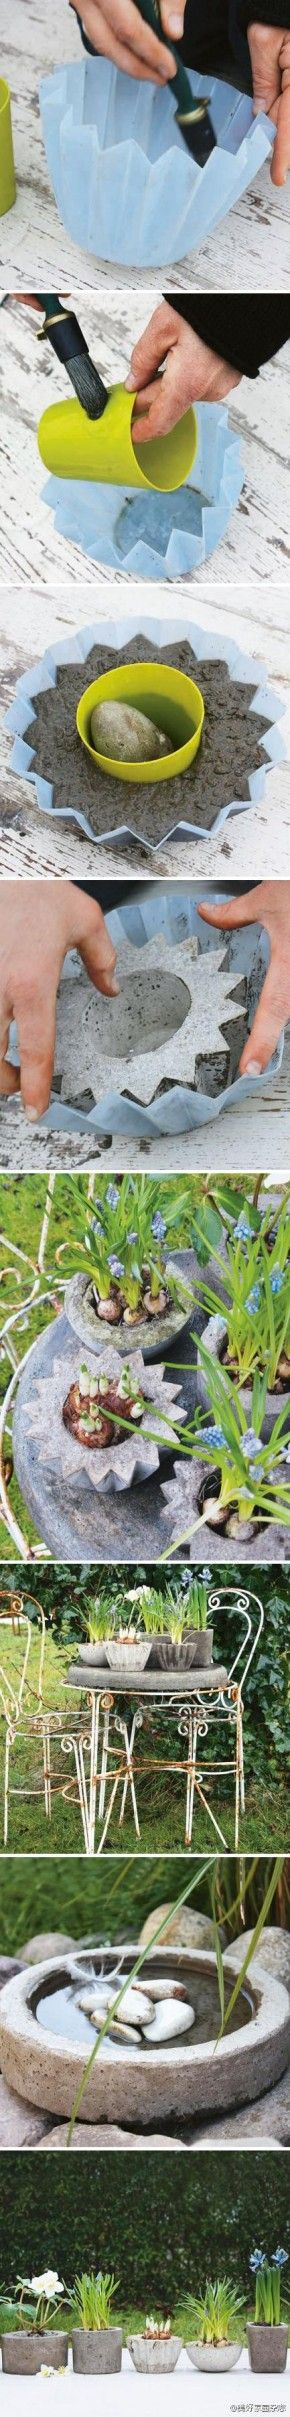 Make your own concrete flower pots I love this idea! Christmas gift ideas already flowing! :)